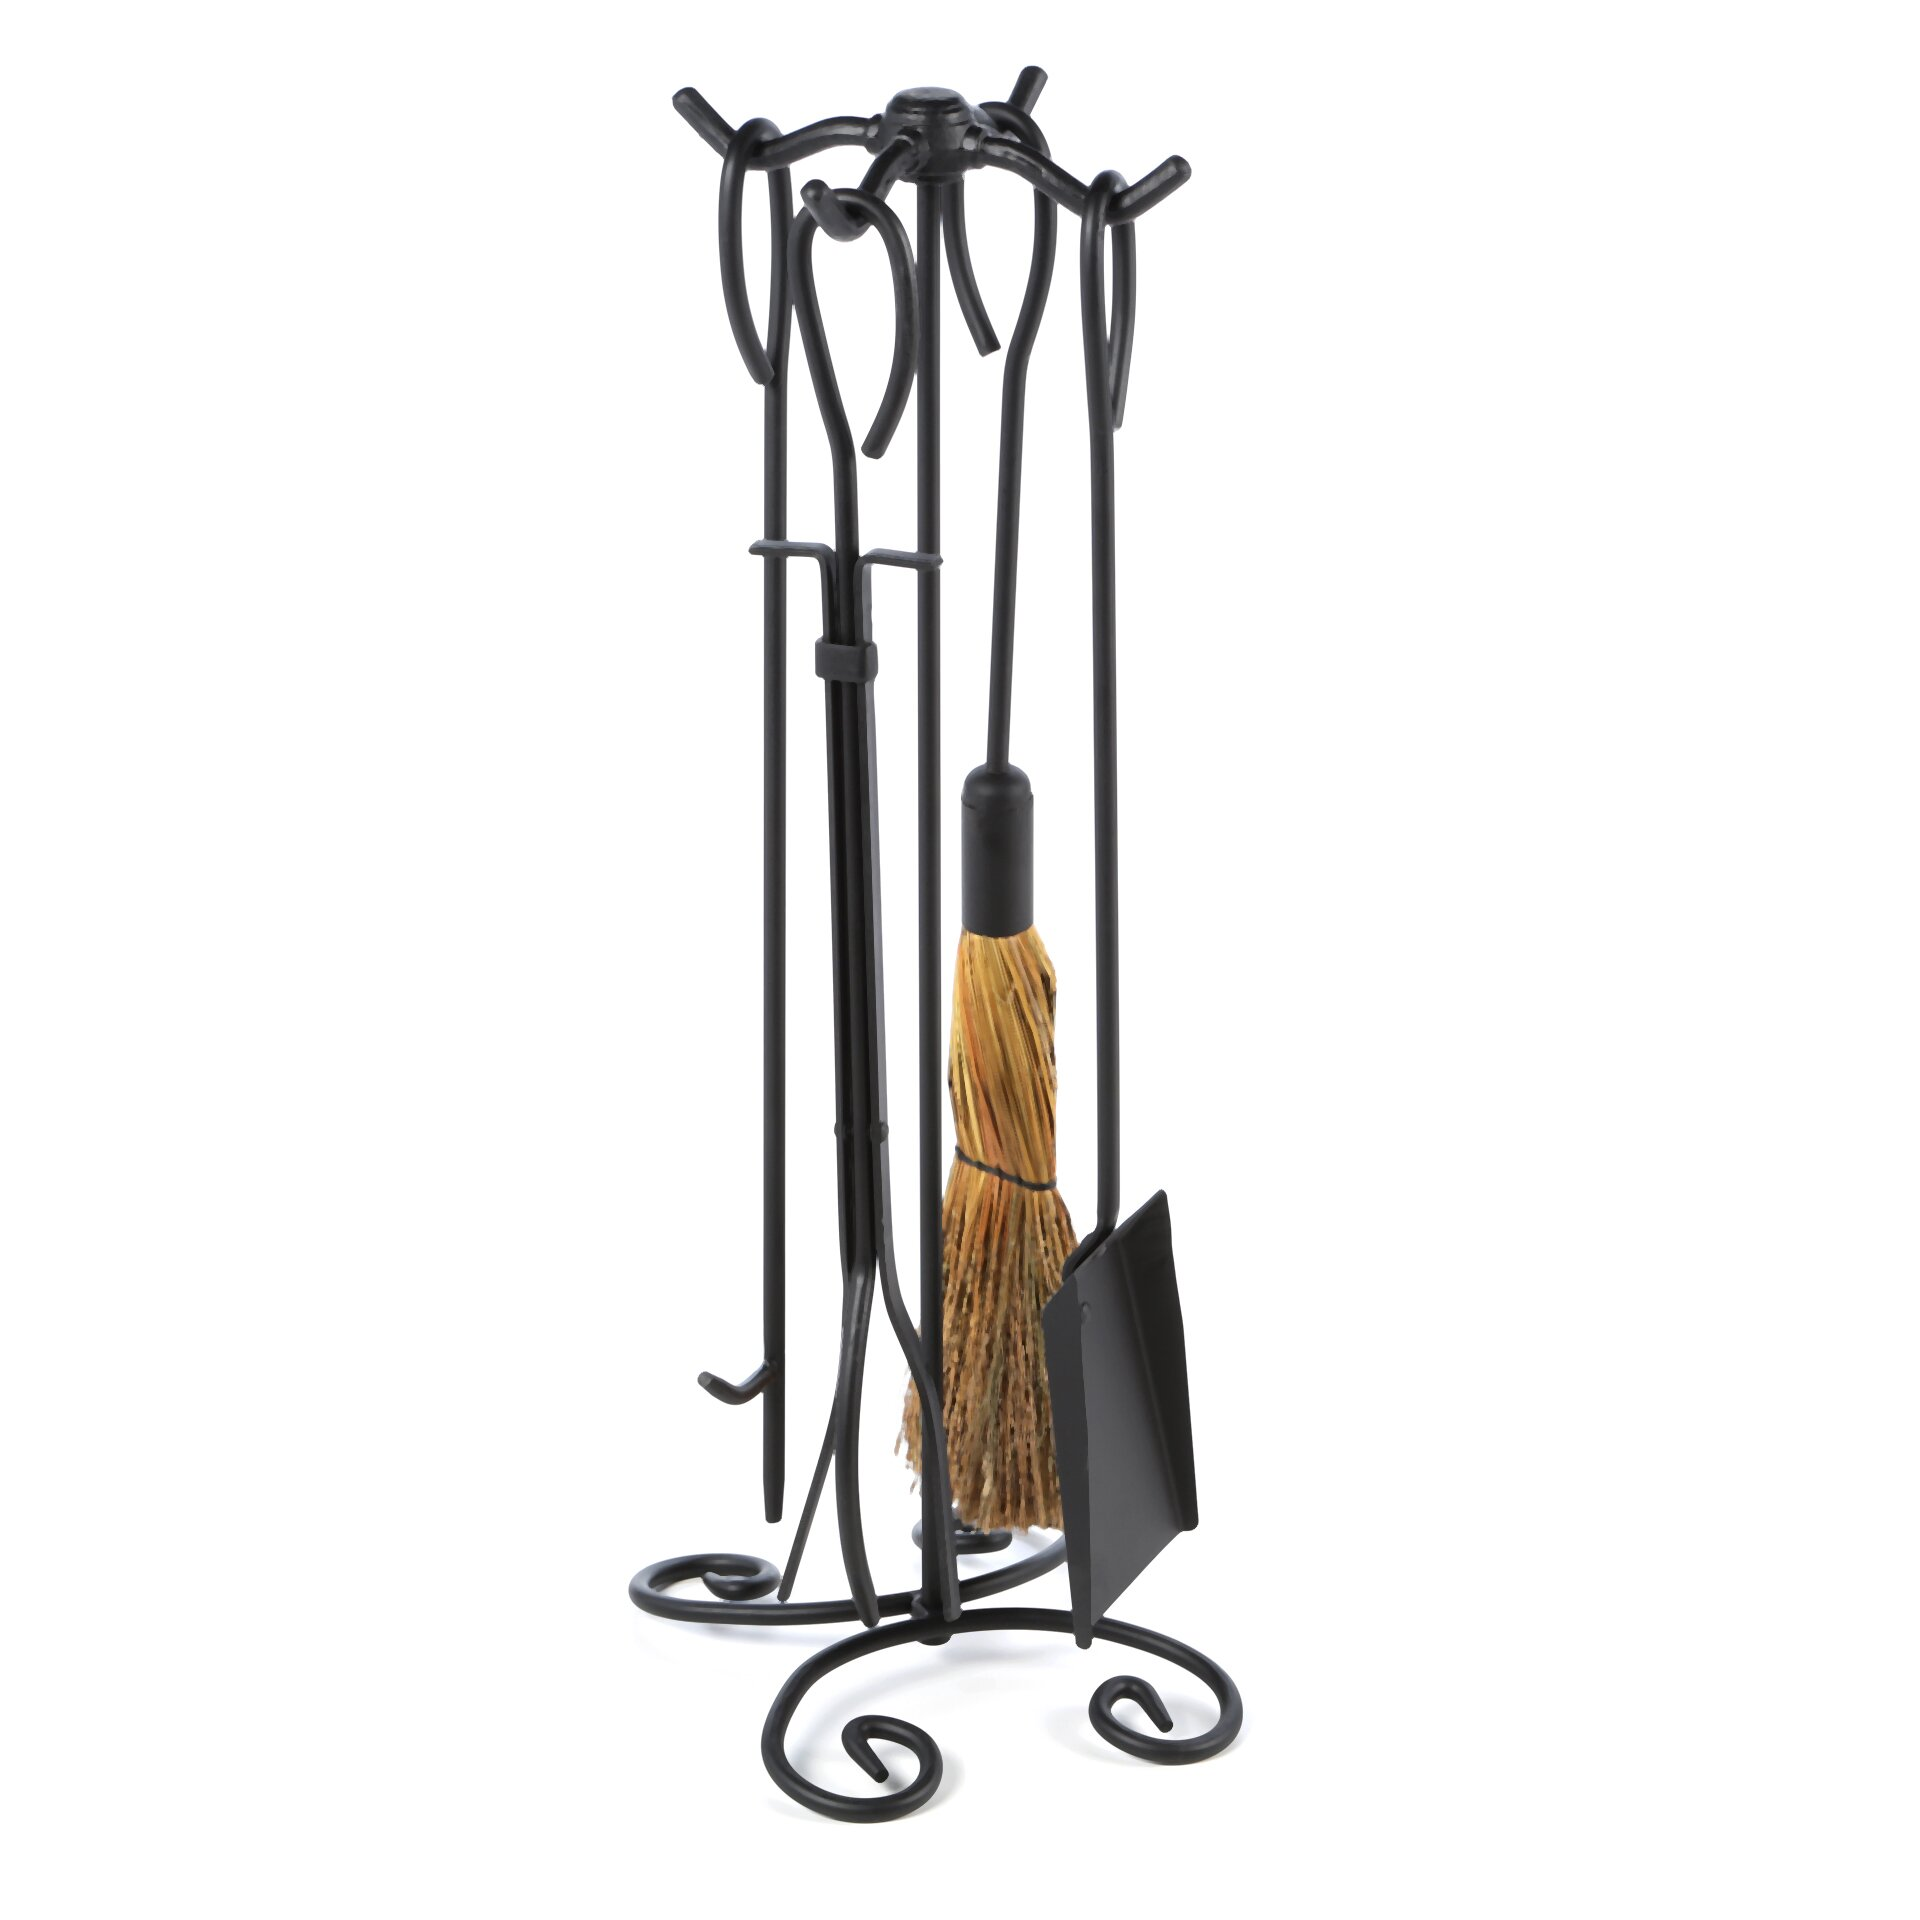 Uniflame 4 Piece Wrought Iron Ring Fireplace Tool Set With Stand Reviews Wayfair